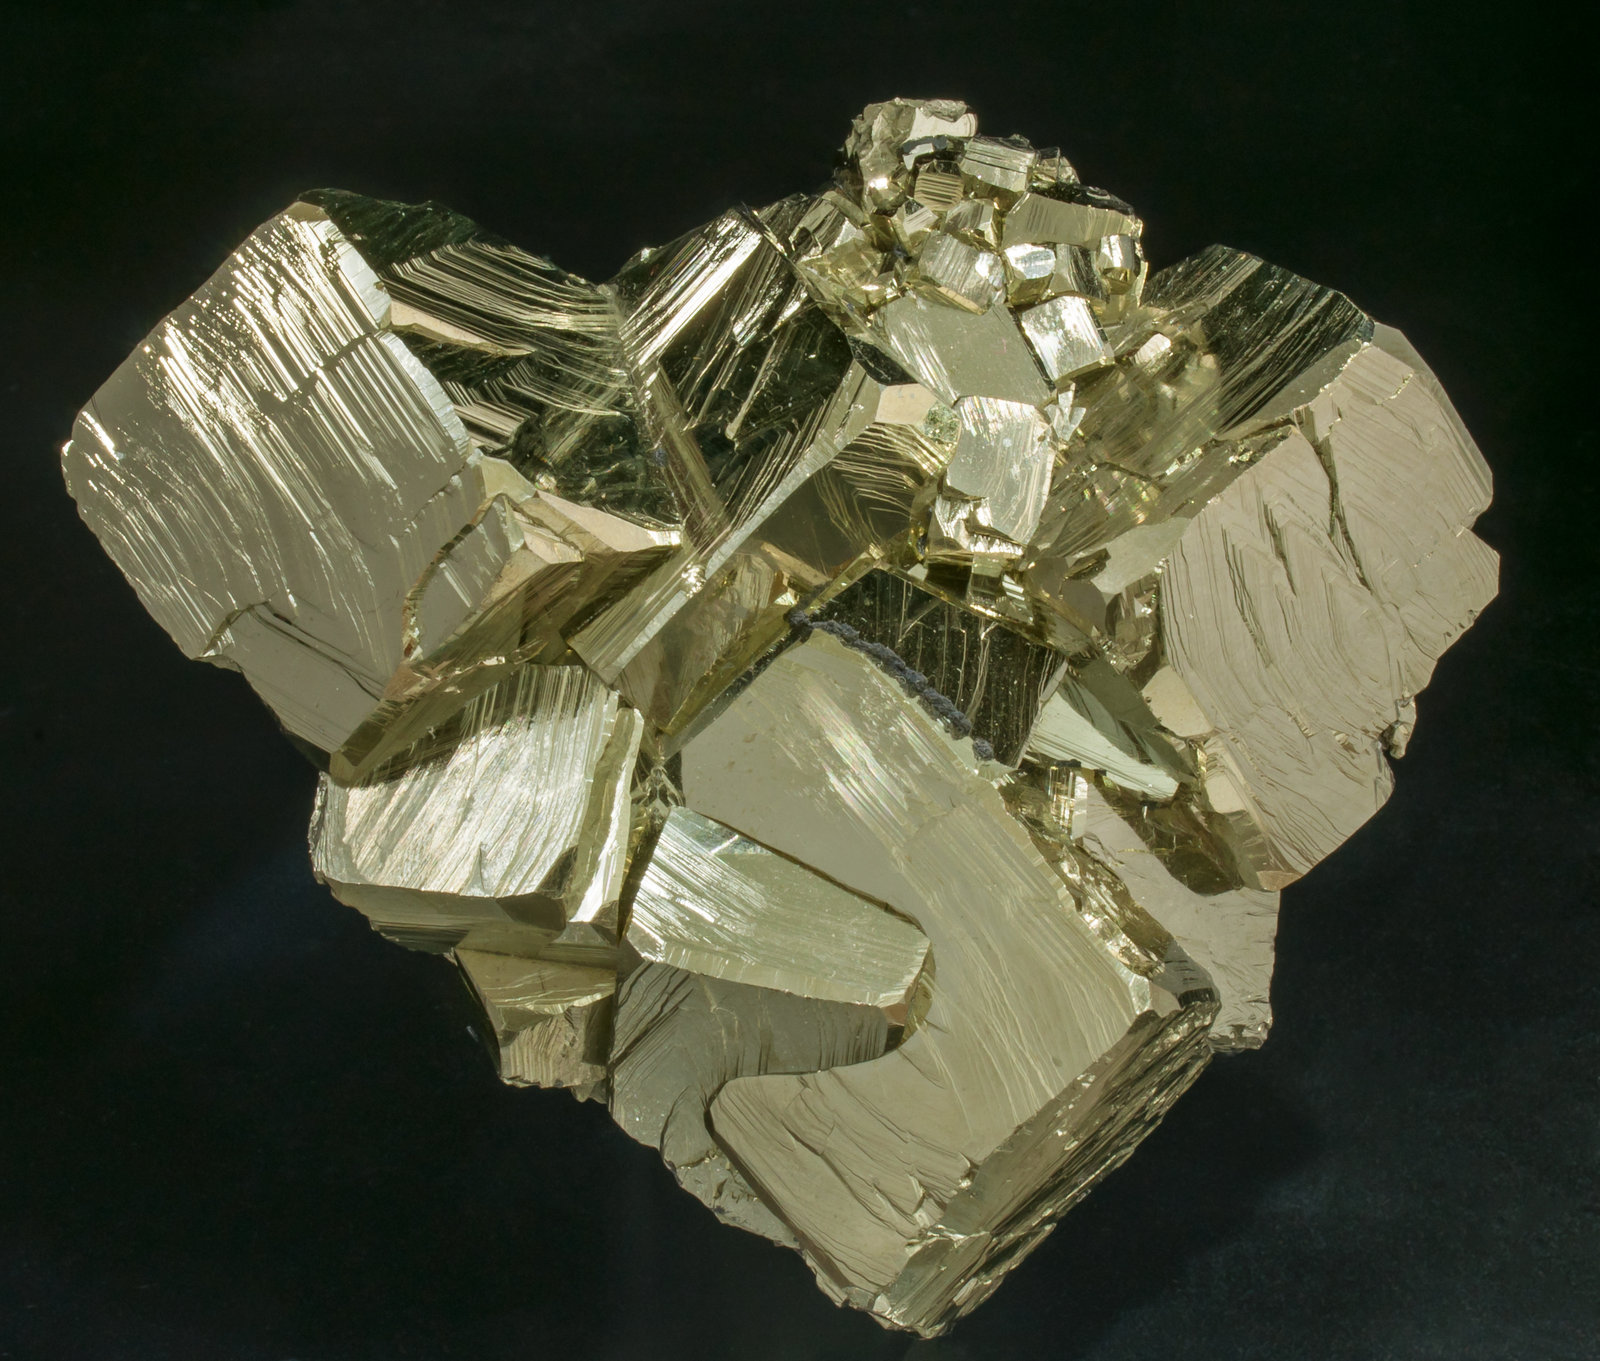 specimens/s_imagesAC9/Pyrite-TF59AC9f.jpg